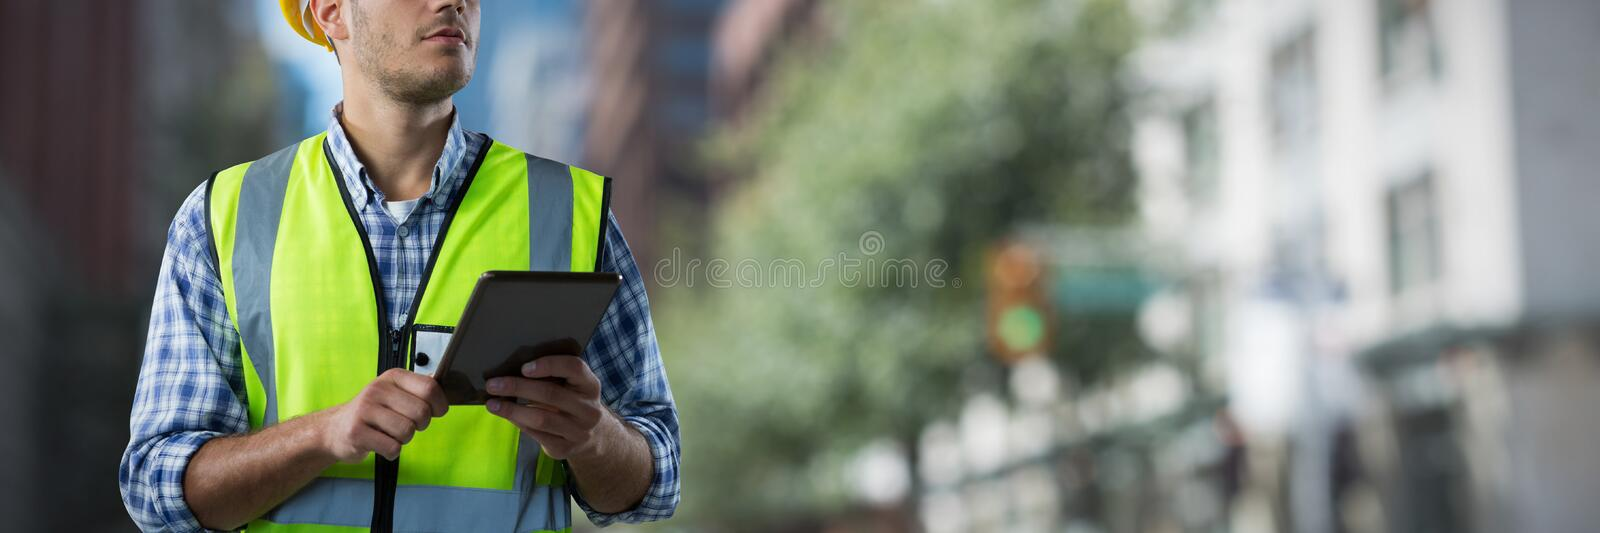 Composite image of concentrated construction worker with tablet royalty free stock photo